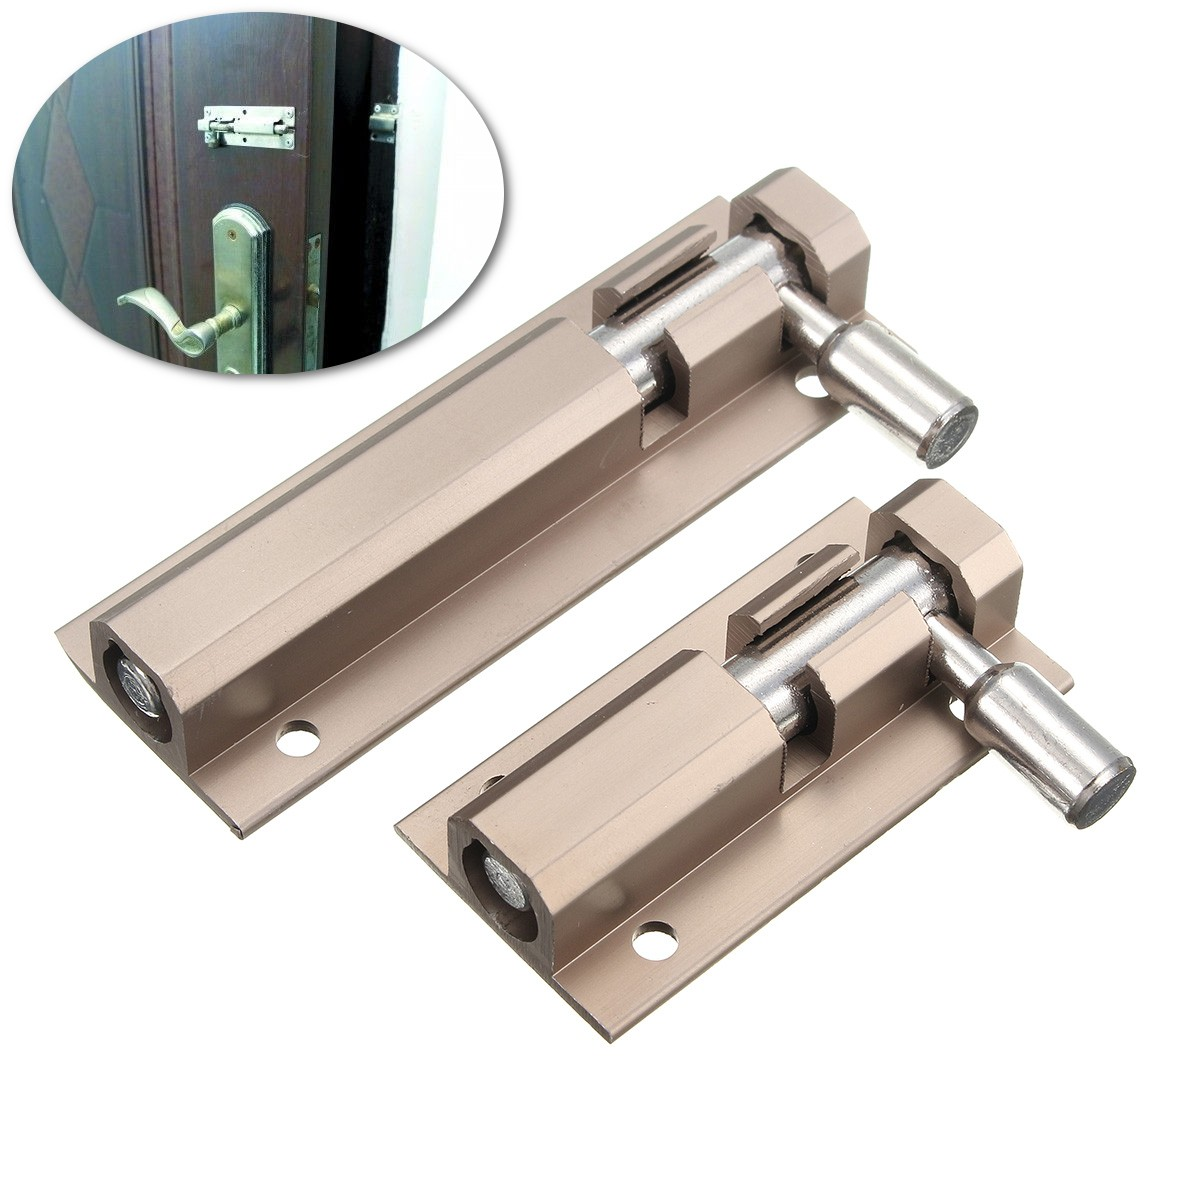 1200 #7E614D Door Bolt Slide Security Lock Zinc Alloy For Home Guard Gate Drawer  wallpaper Home Security Doors And Locks 7251200